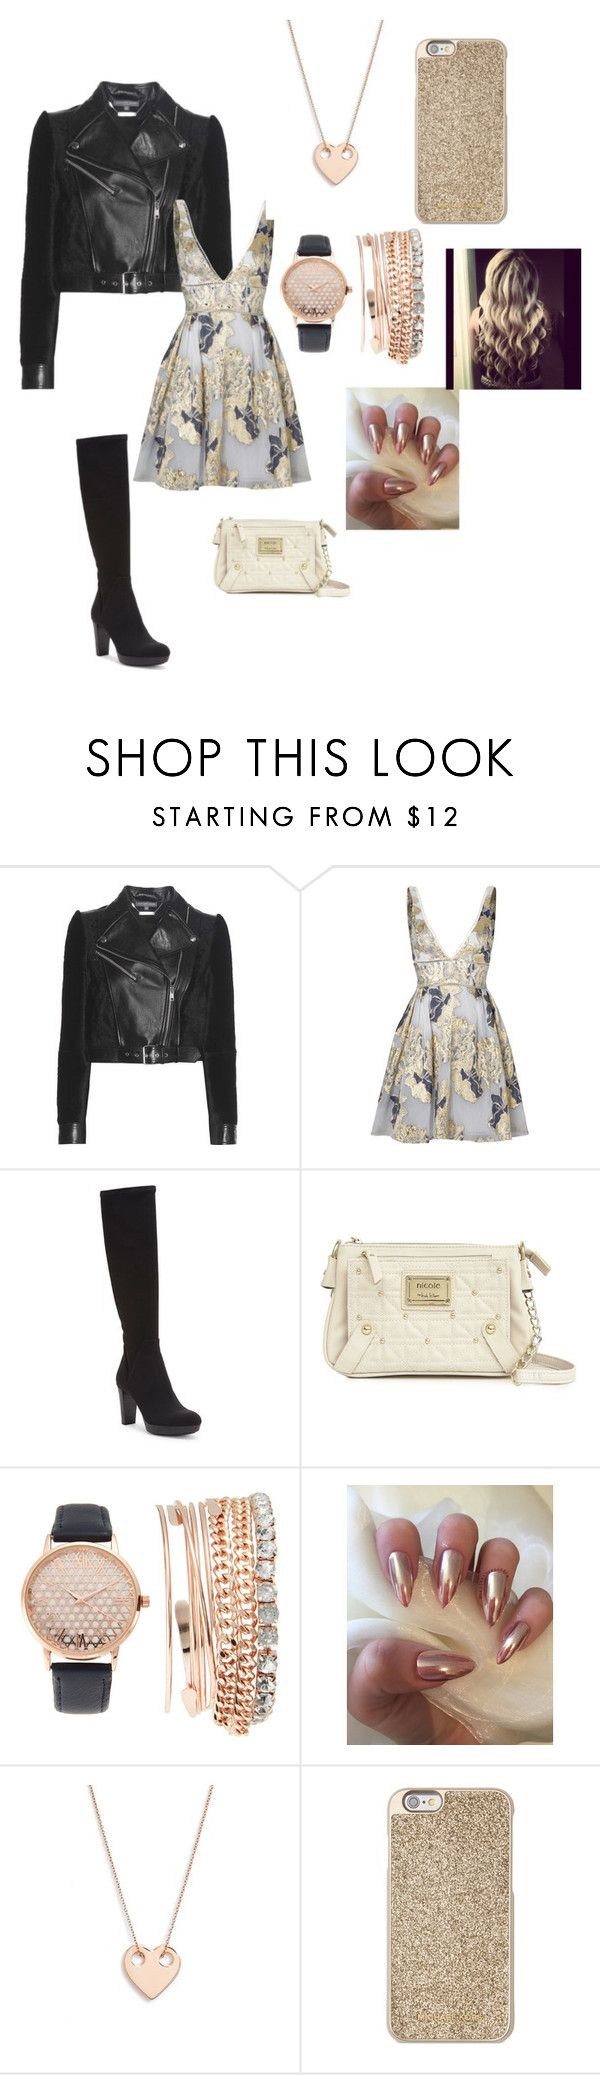 """cute and dangerous"" by moriartylauren on Polyvore featuring Alexander McQueen, Notte by Marchesa, Donald J Pliner, Nicole By Nicole Miller, Jessica Carlyle, Ginette NY and Michael Kors"